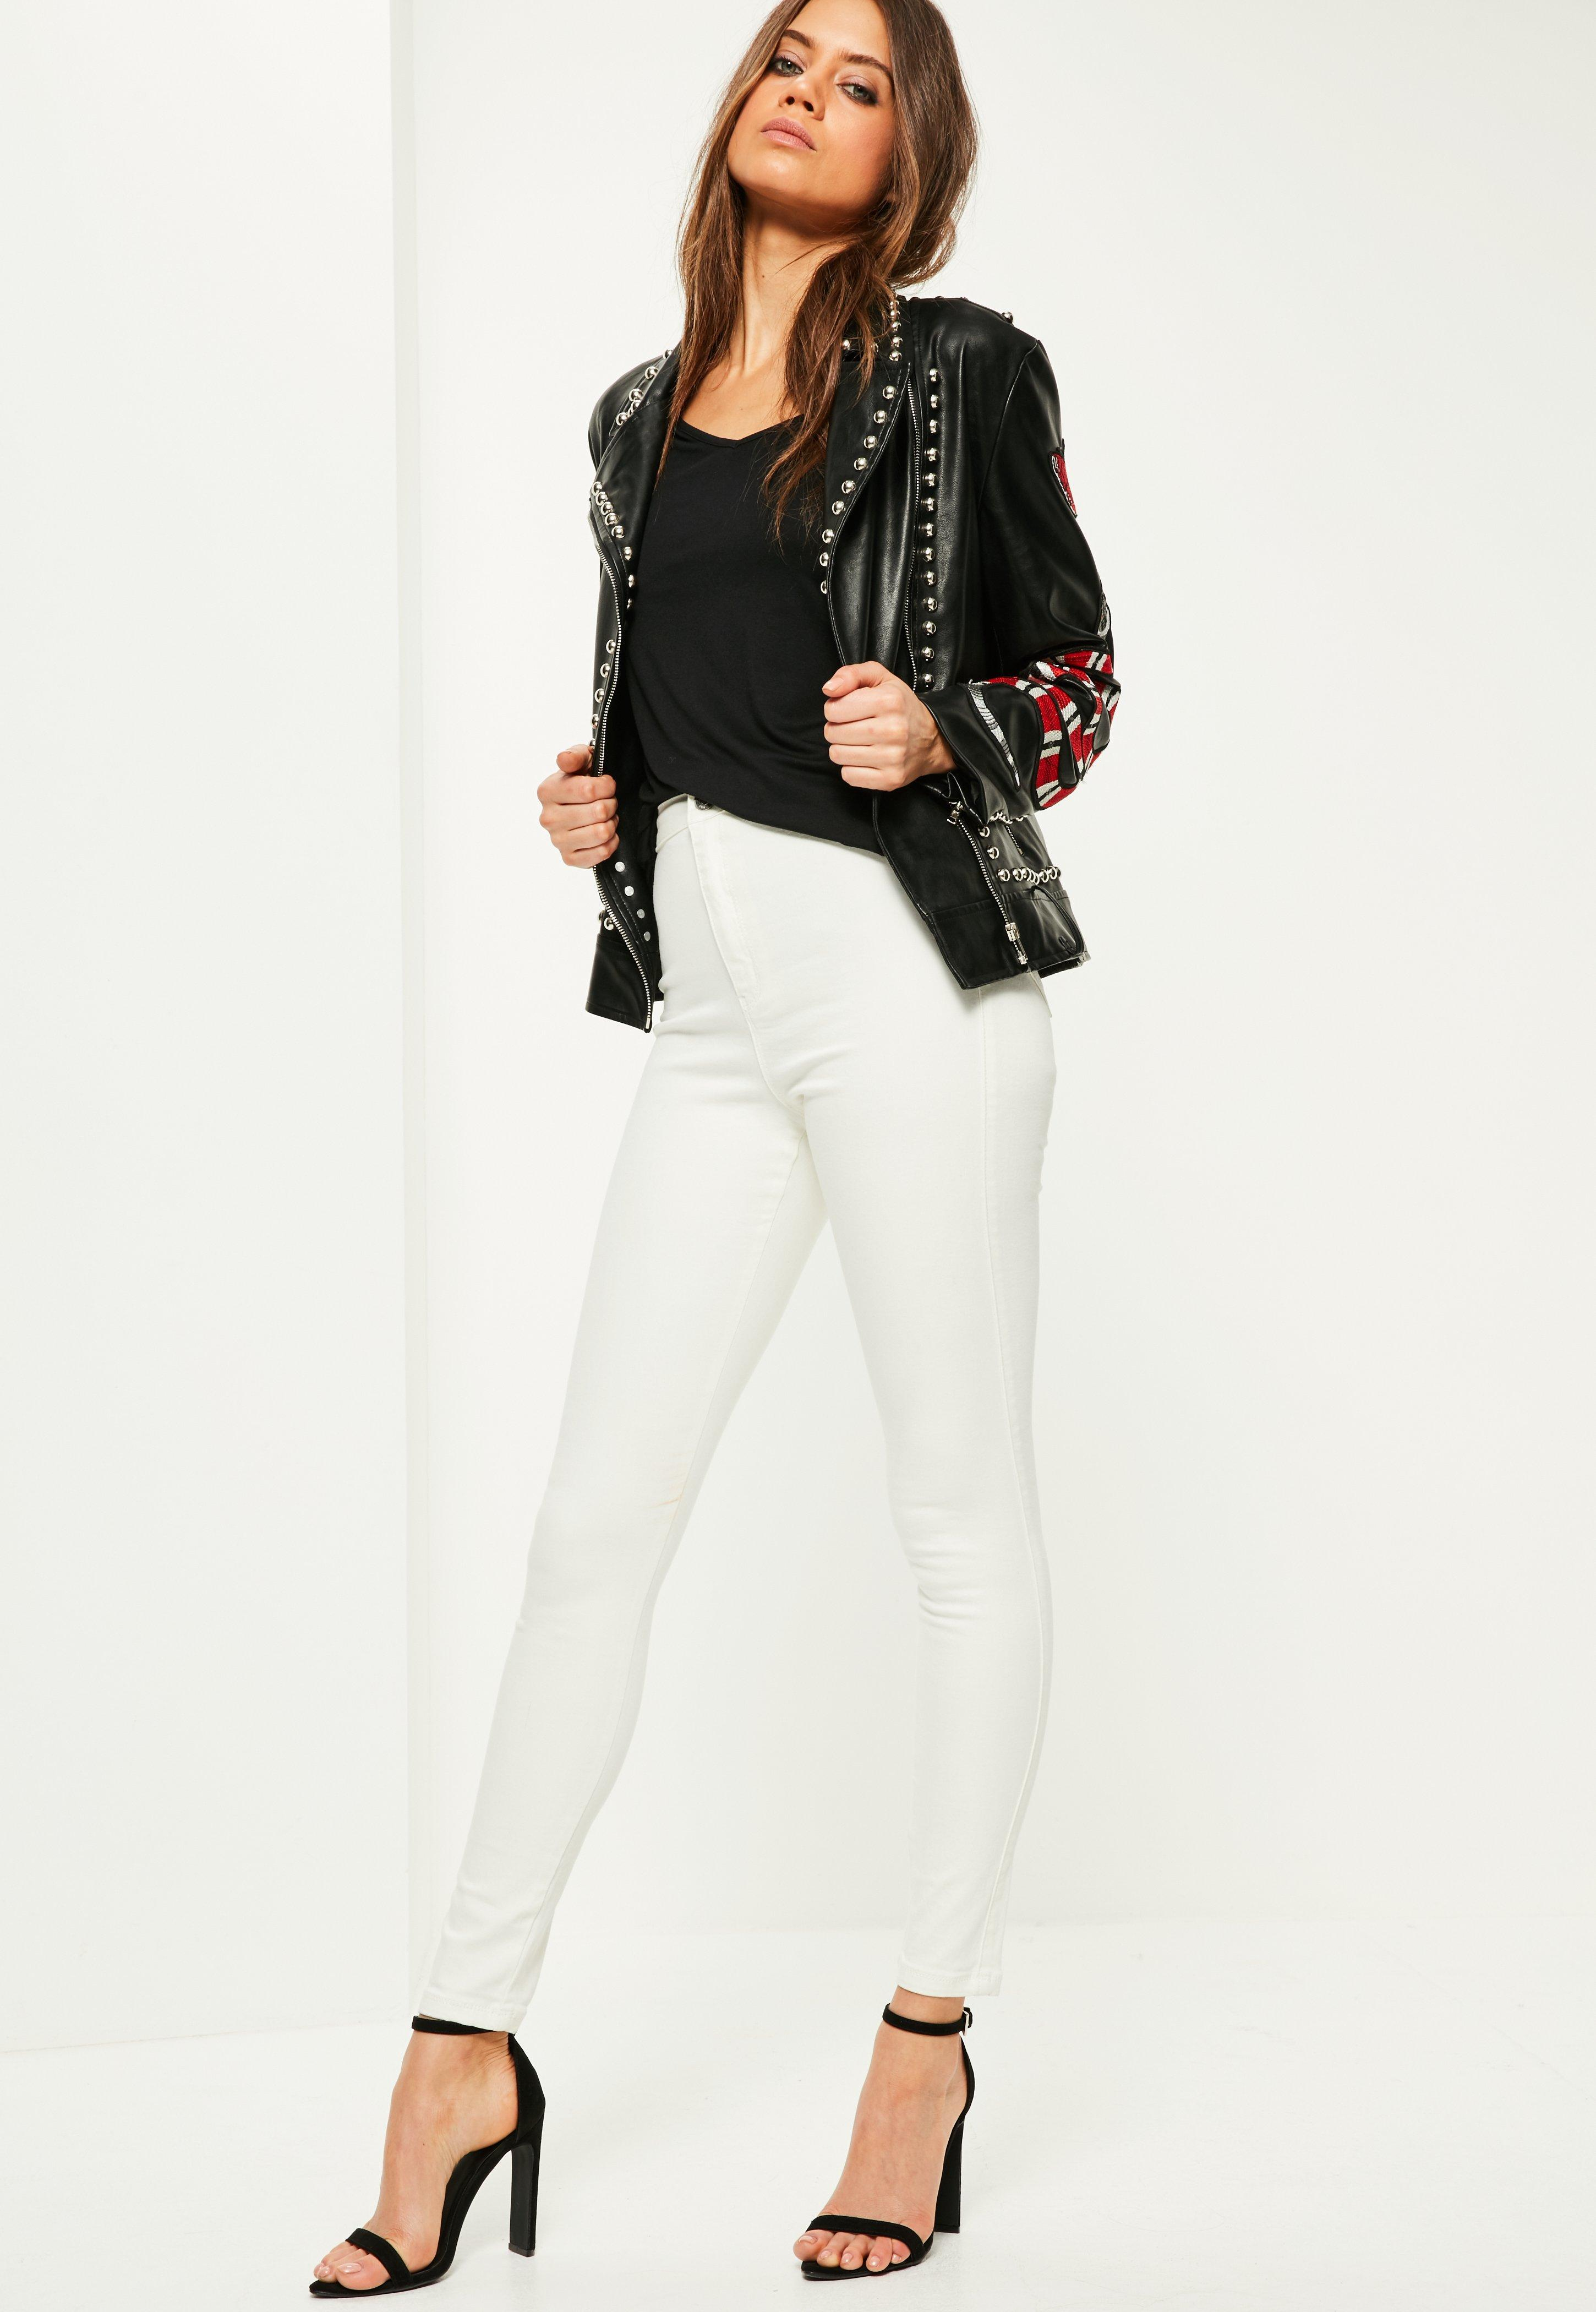 Lyst - Hudson Jeans Nico Mid-Rise Super Skinny Jeans in White